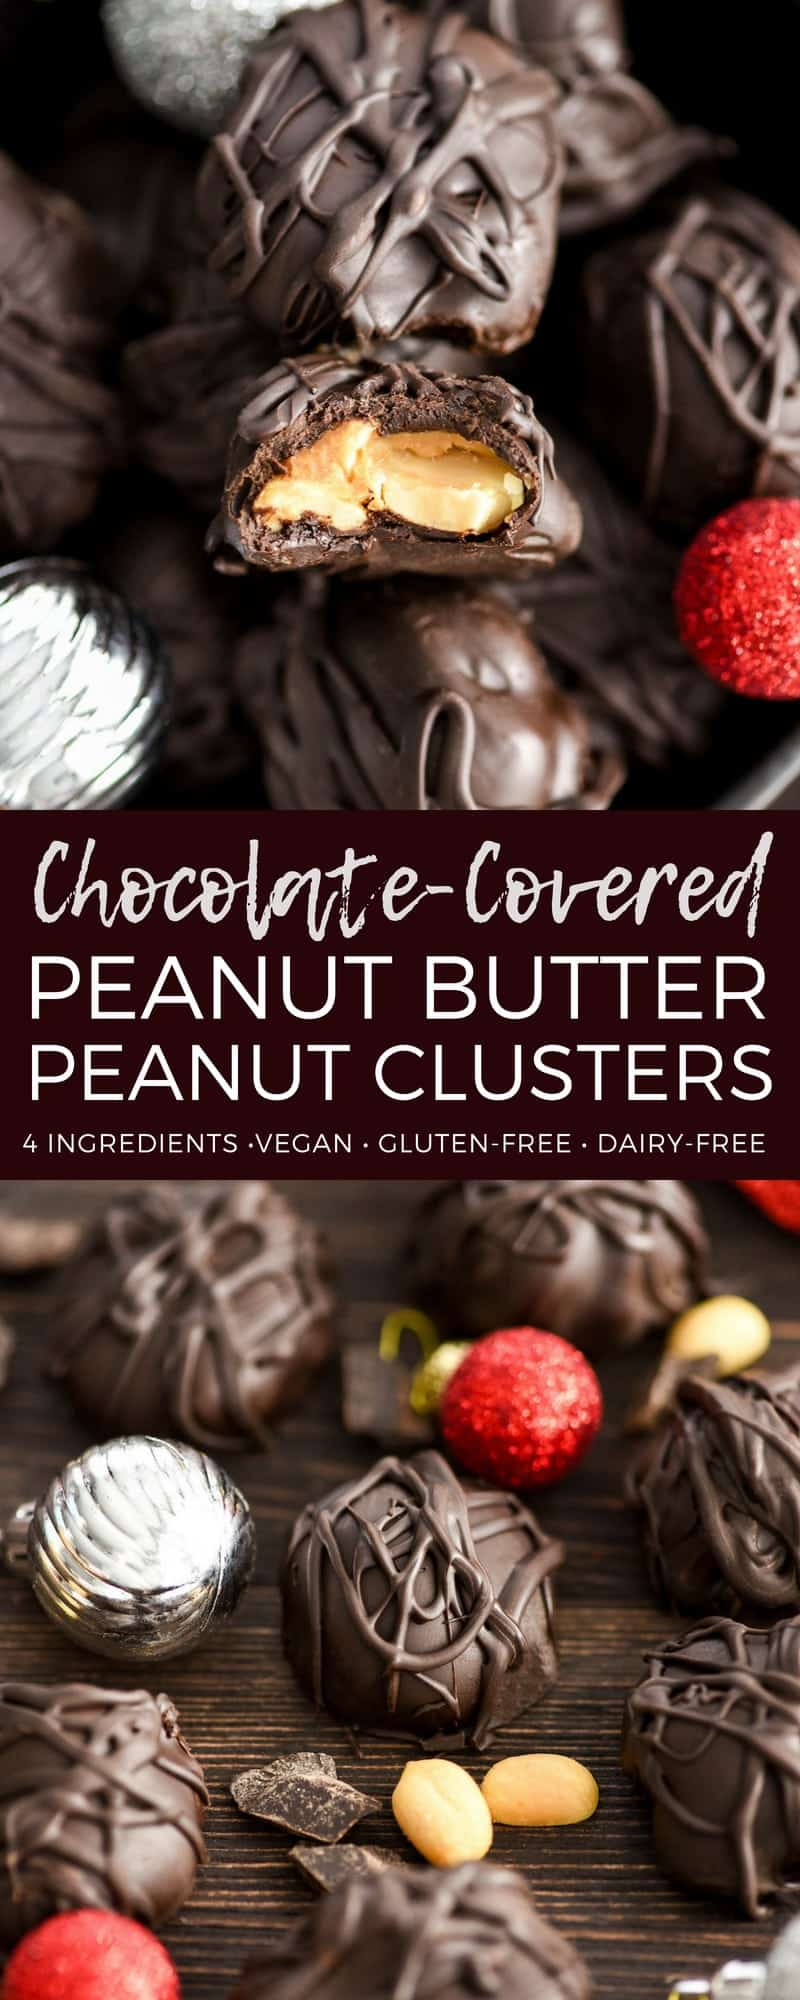 This Chocolate Peanut Clusters with Peanut Butter recipe has only 4 ingredients! They're easy to make but taste amazing! A perfect treat to make as a gift for friends and neighbors!   #vegan #glutenfree #dairyfree #peanutbutter #christmas #candy